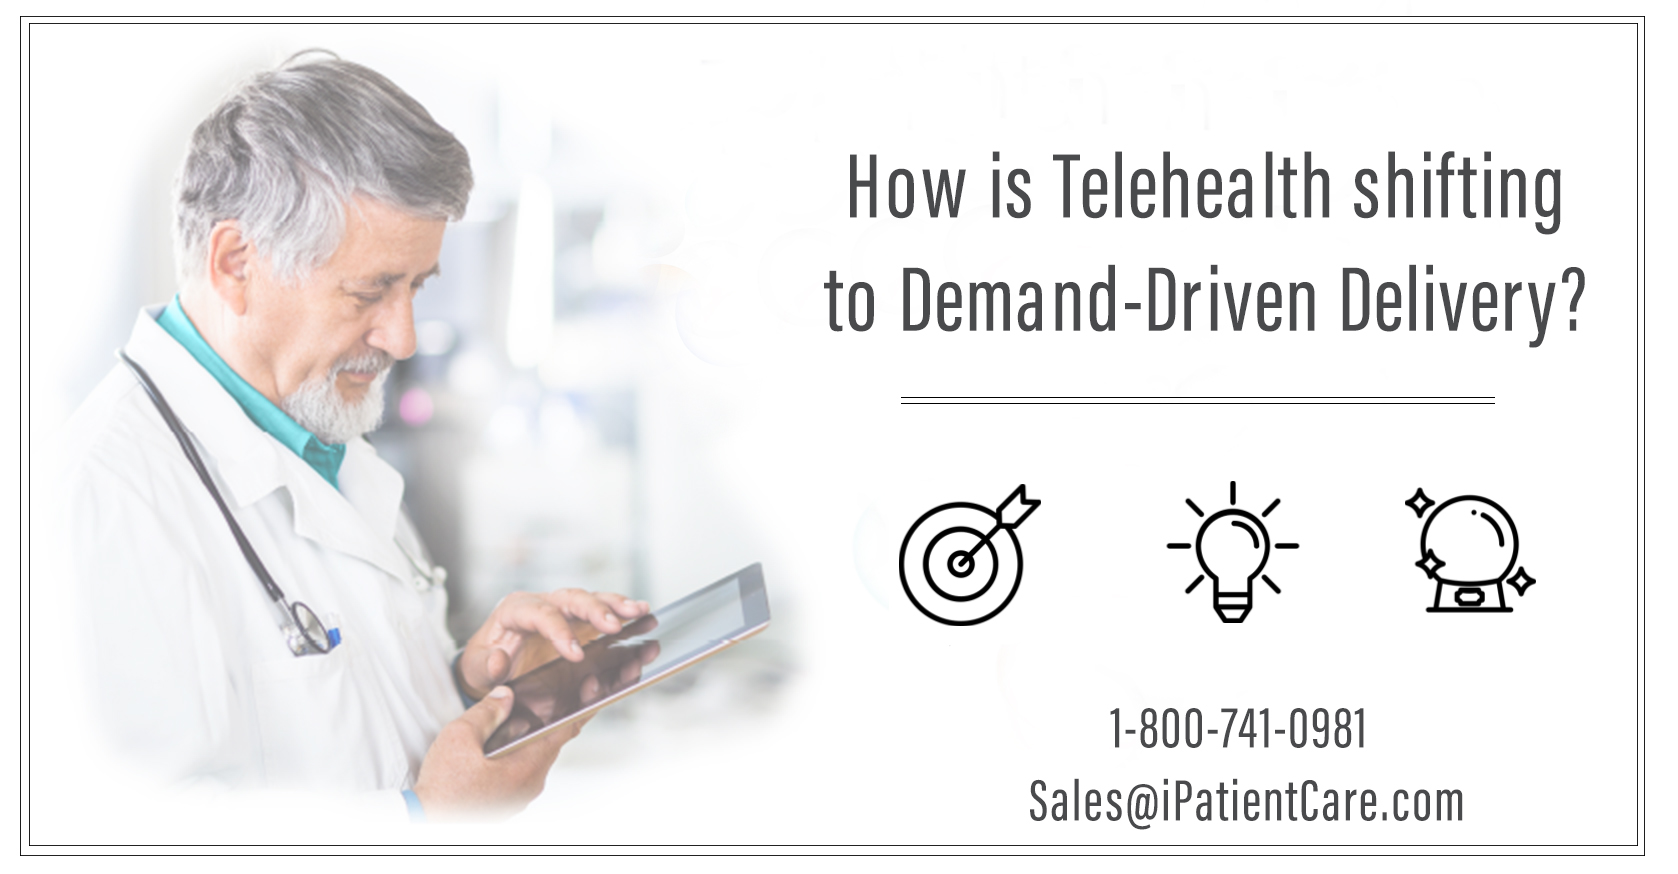 iPatientCare Blog - How is Telehealth shifting to Demand-Driven Delivery?